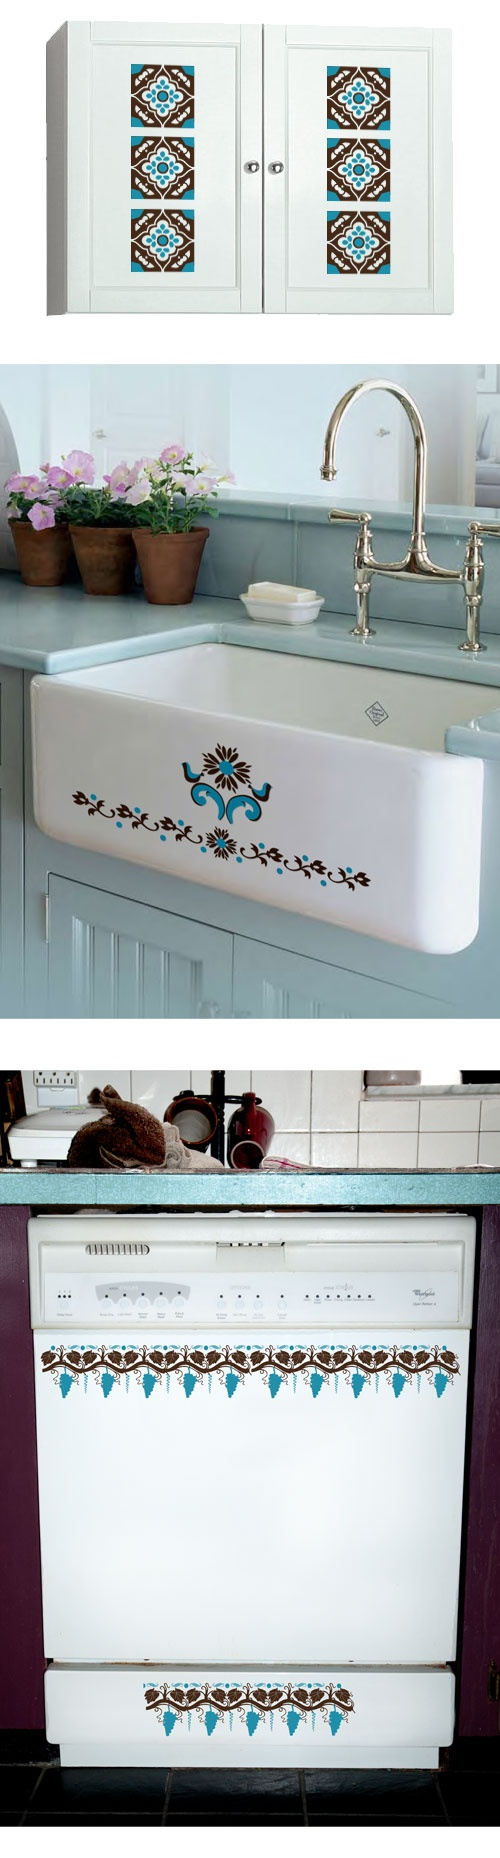 Decals Are Great For Dressing Up Your Kitchen Or Bathroom So Easy